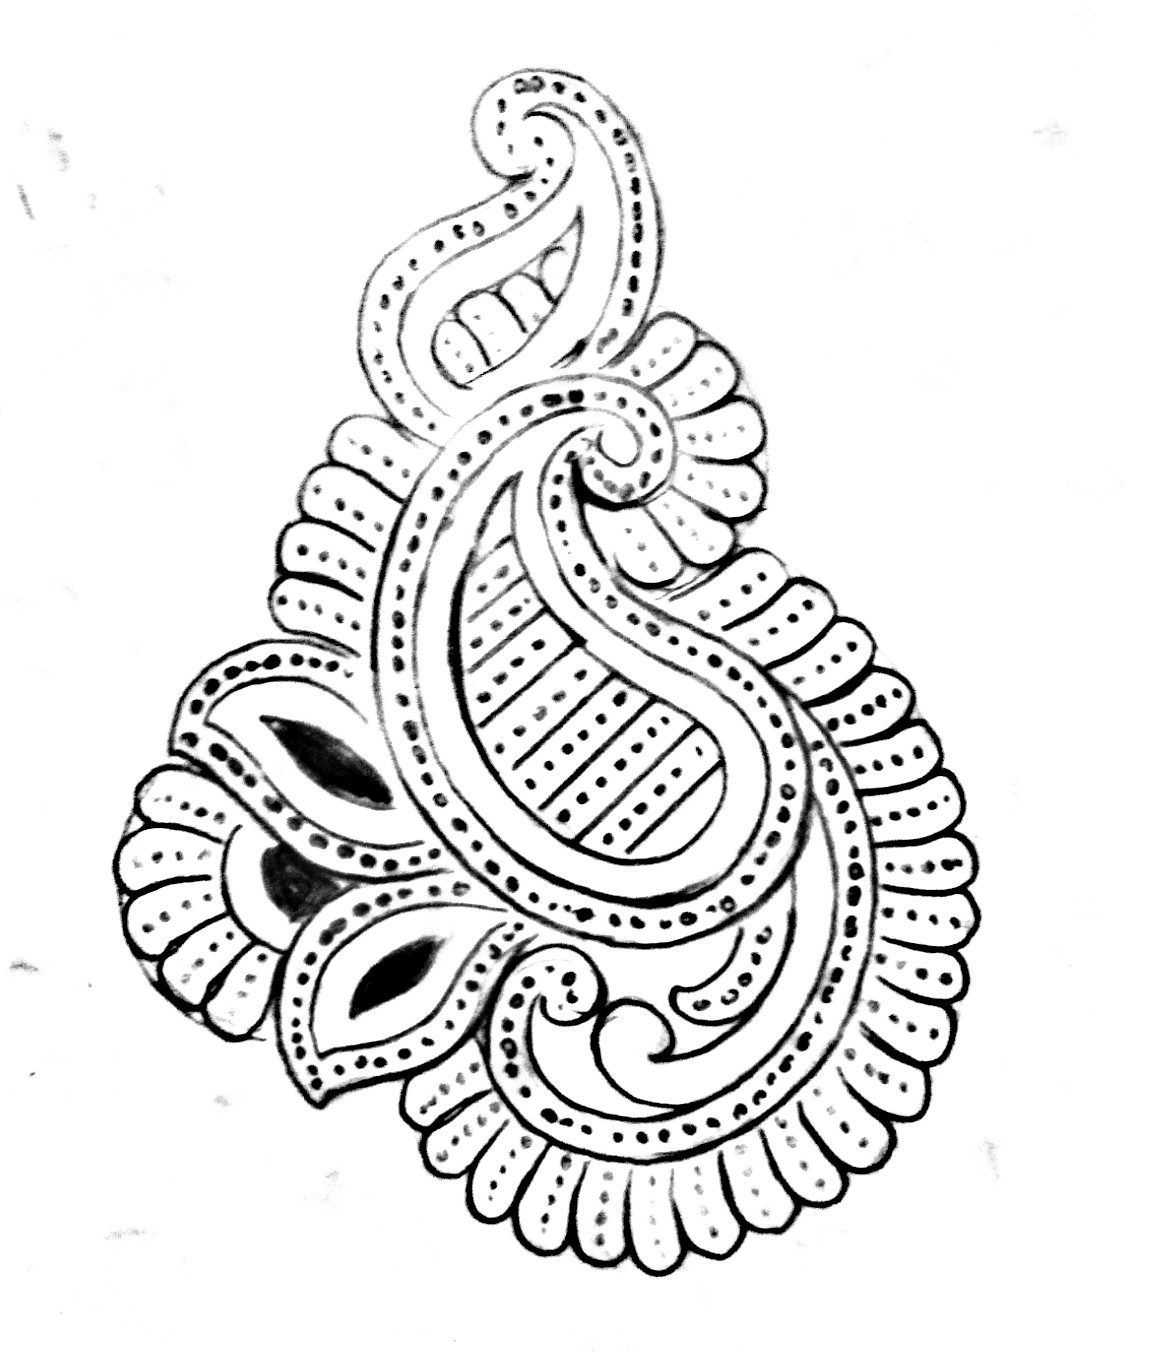 Hand embroidery designs images free download 2020/sketch for hand embroidery flowers designs